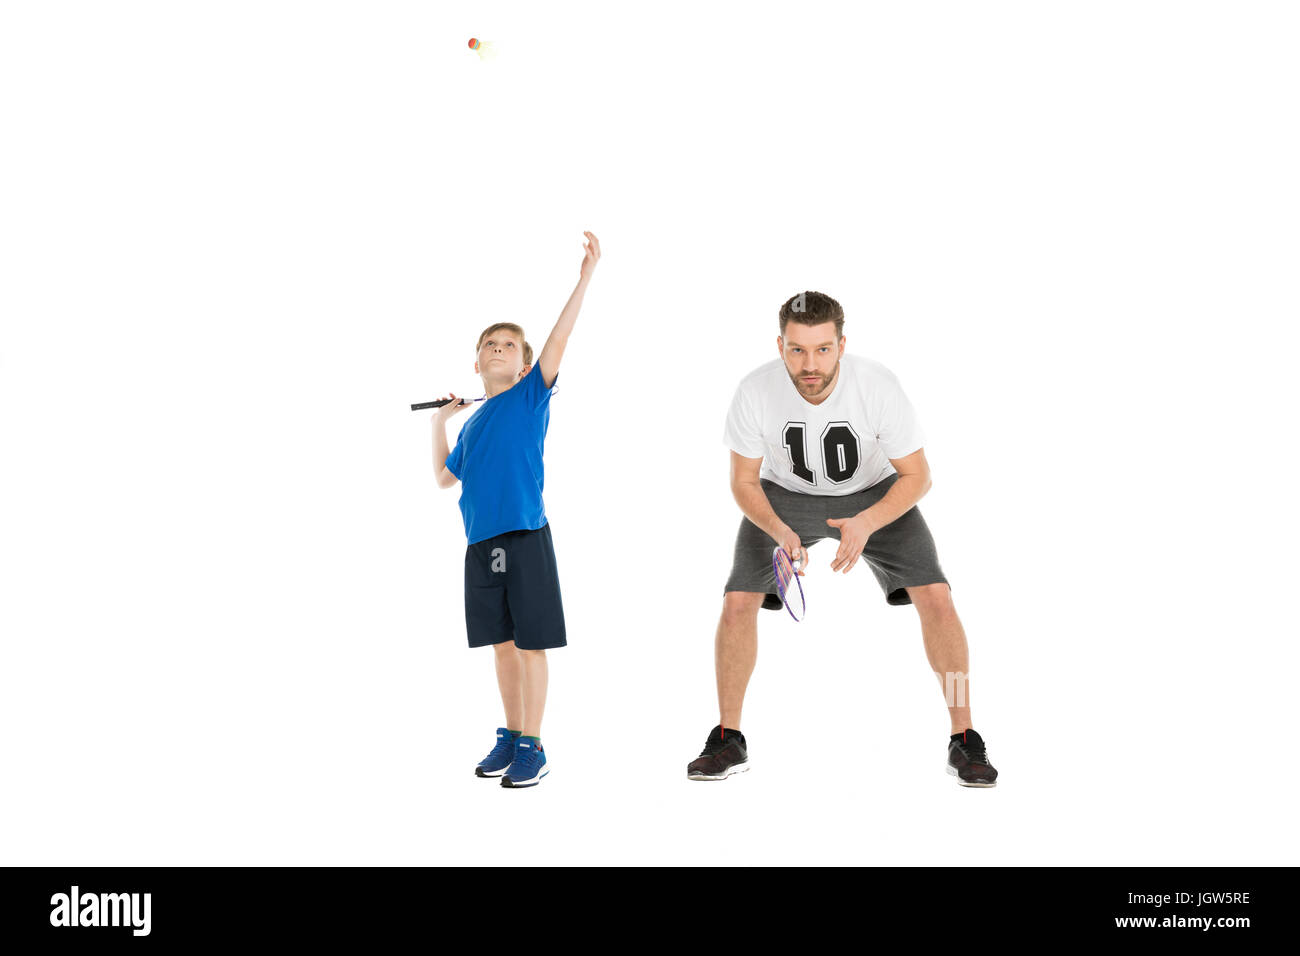 active father and son playing tennis together isolated on white - Stock Image